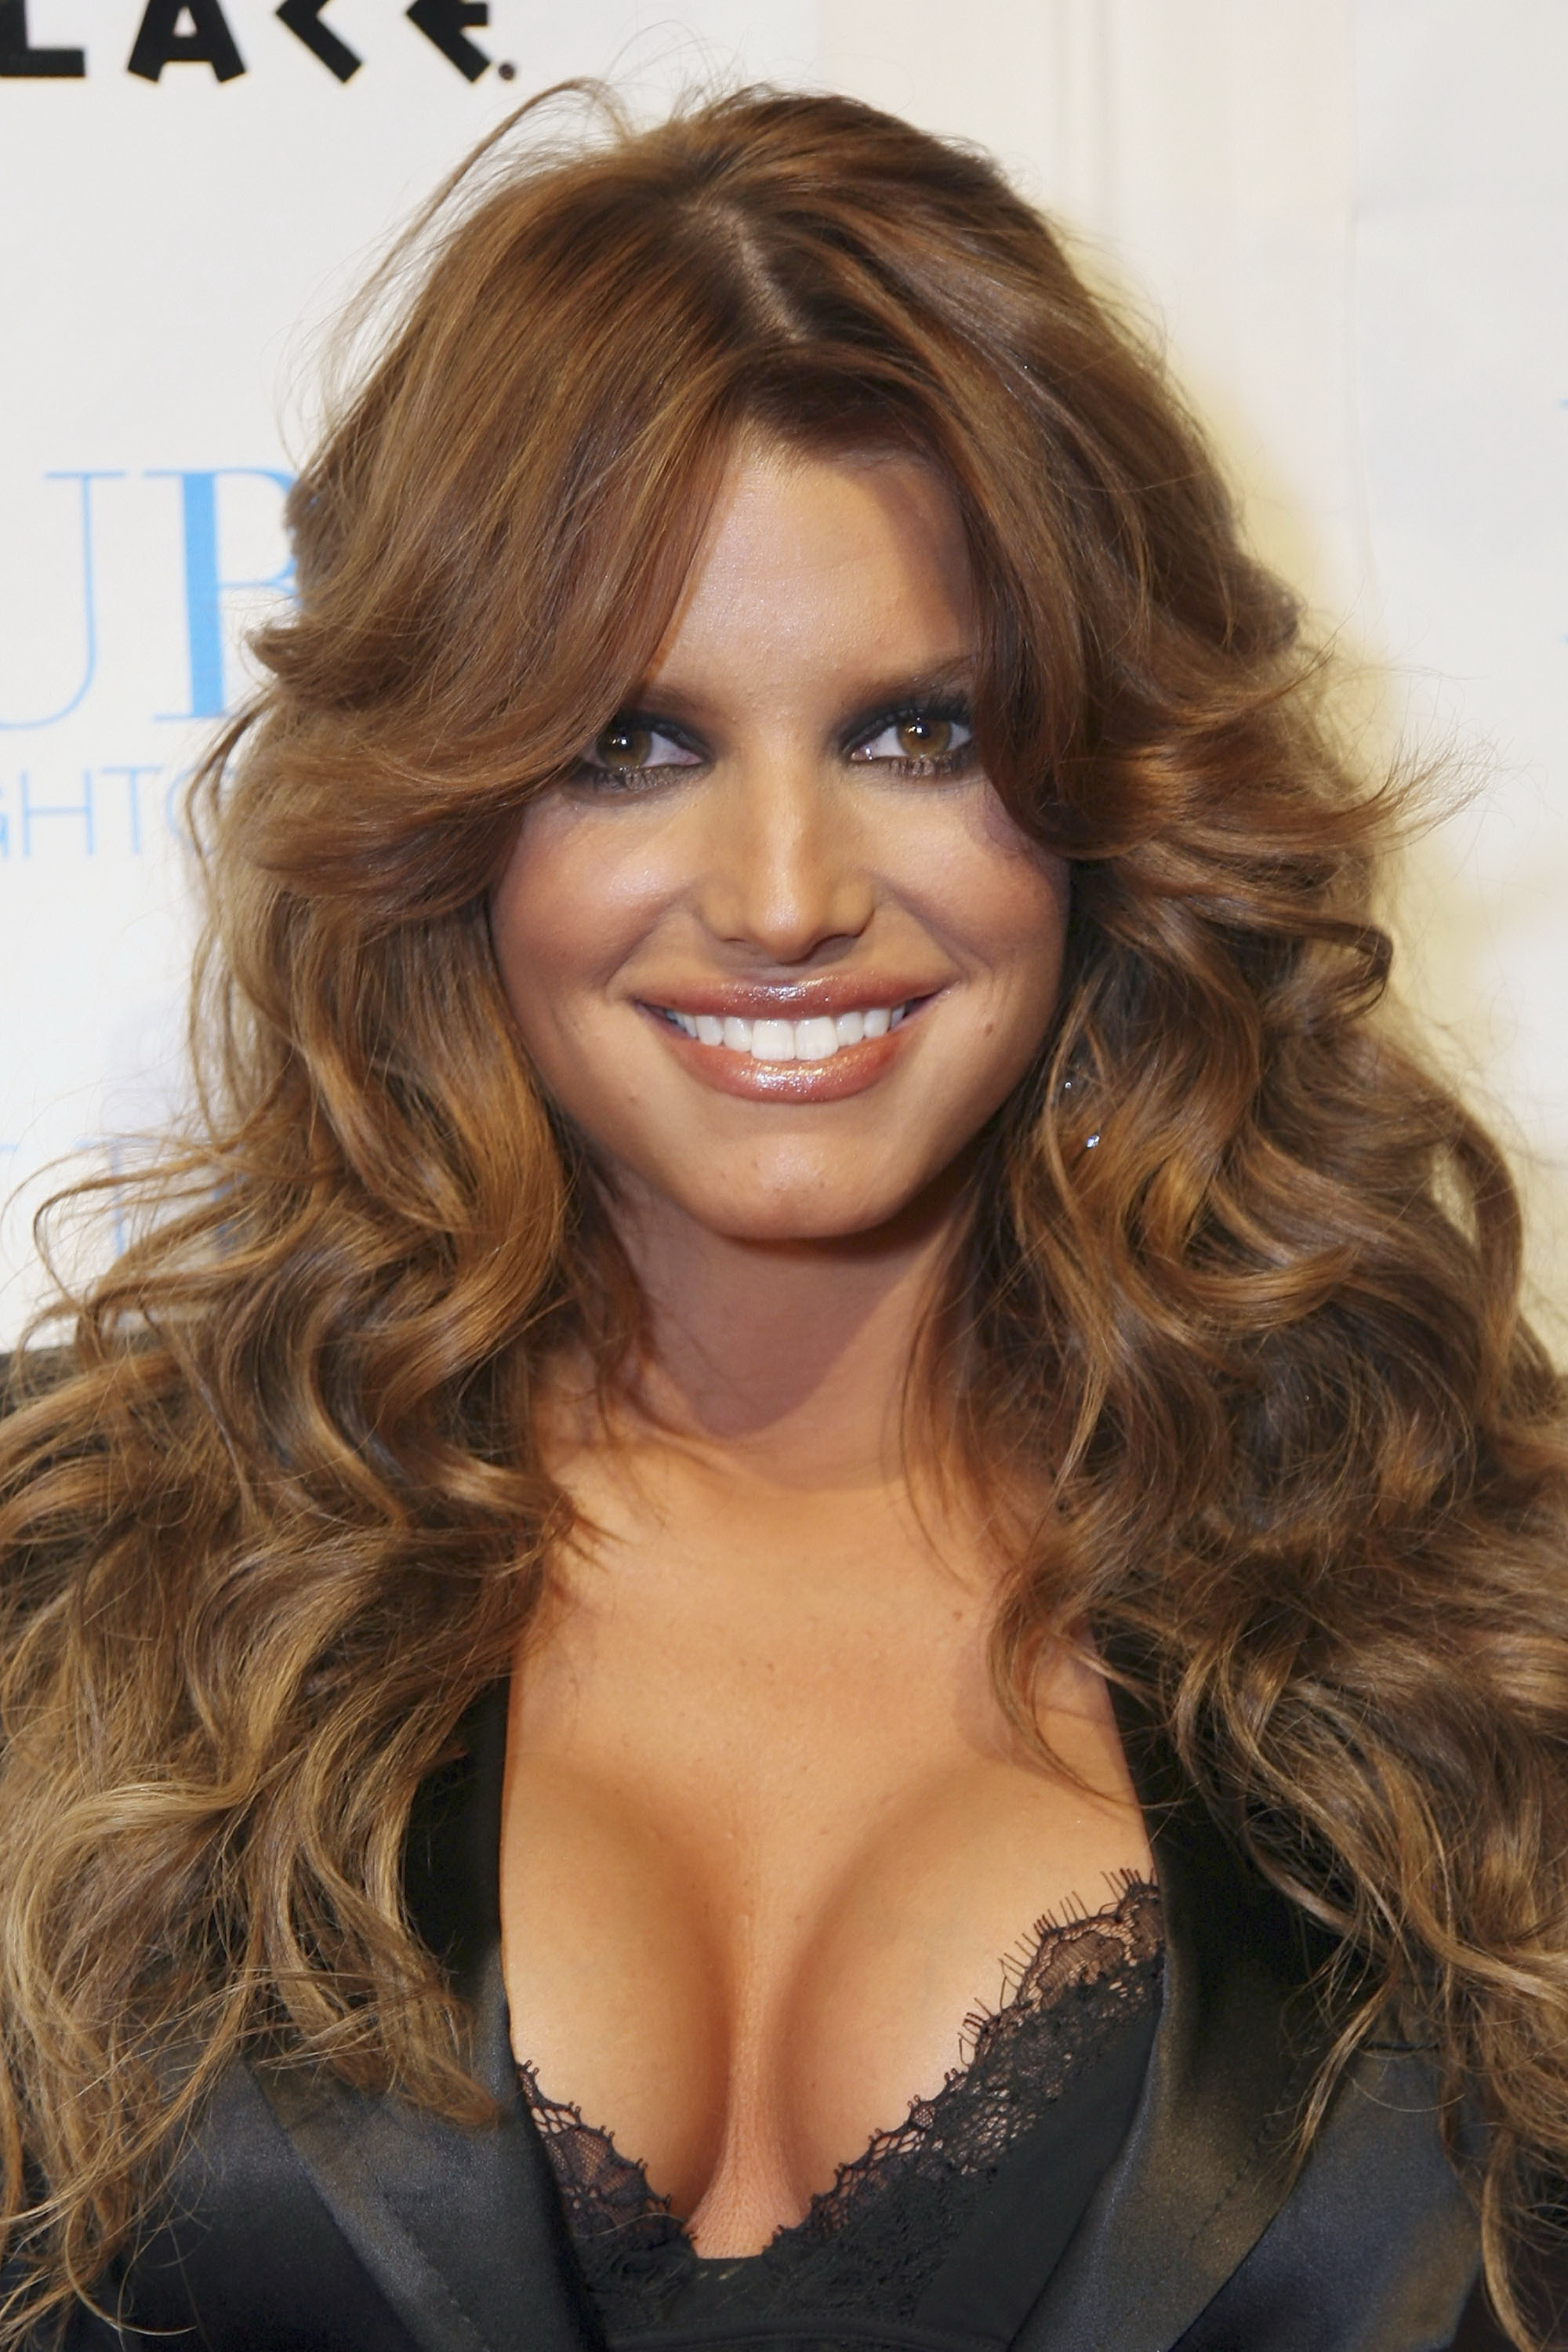 Jessica Simpson Nude - Page 18 Pictures, Naked, Oops -5841